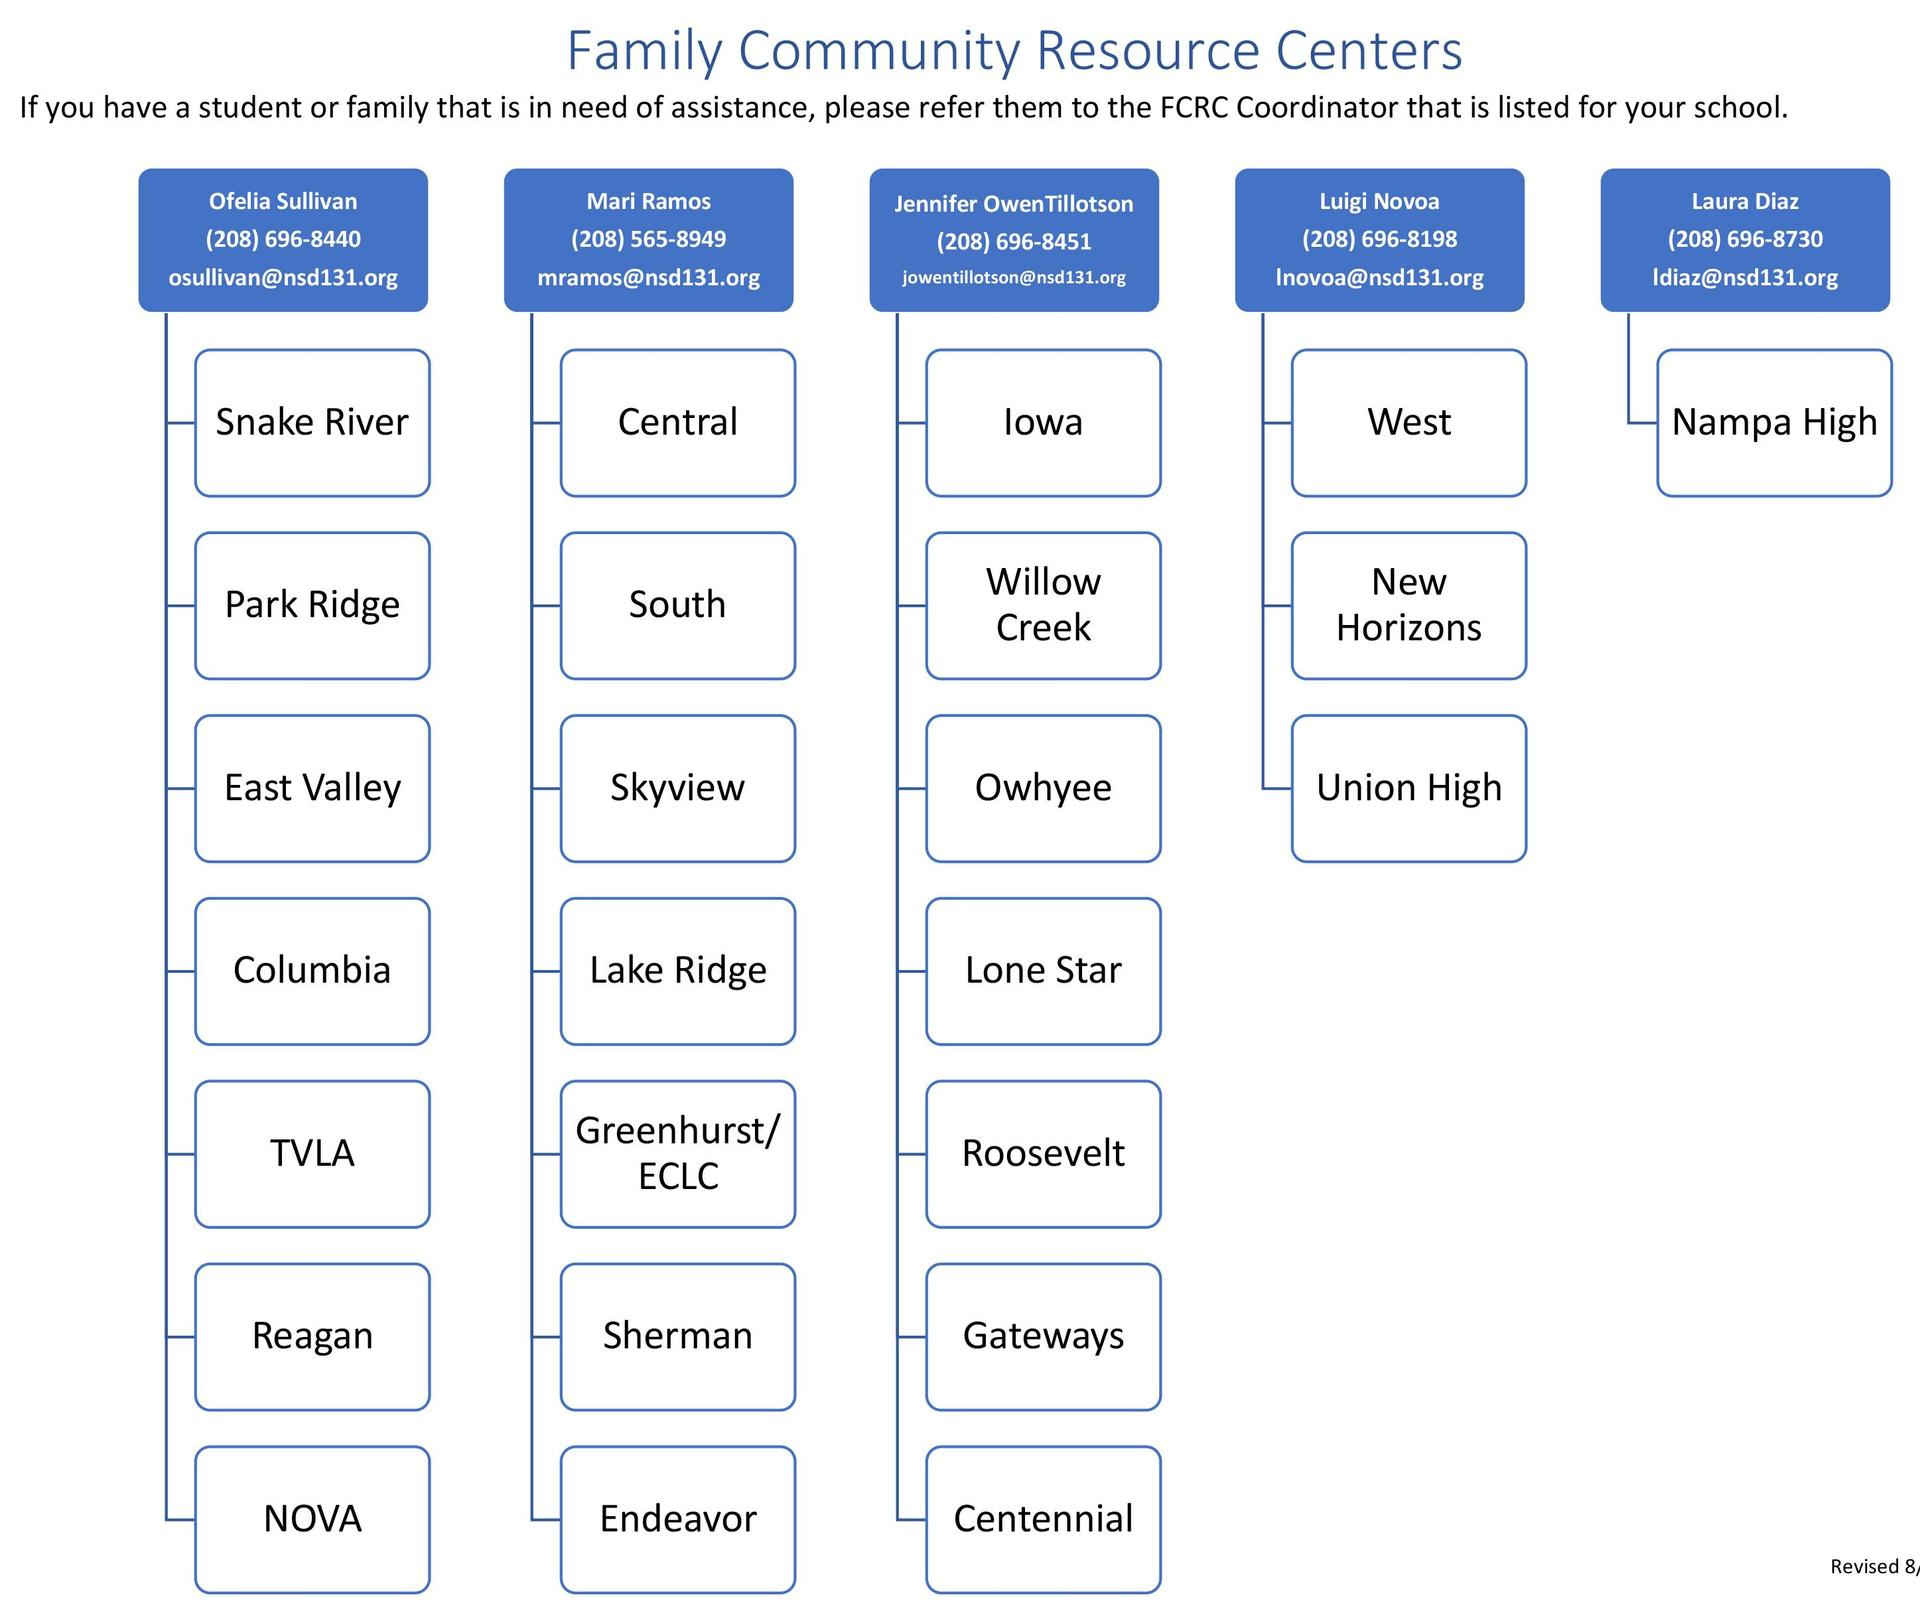 Org chart showing who is at which FCRC